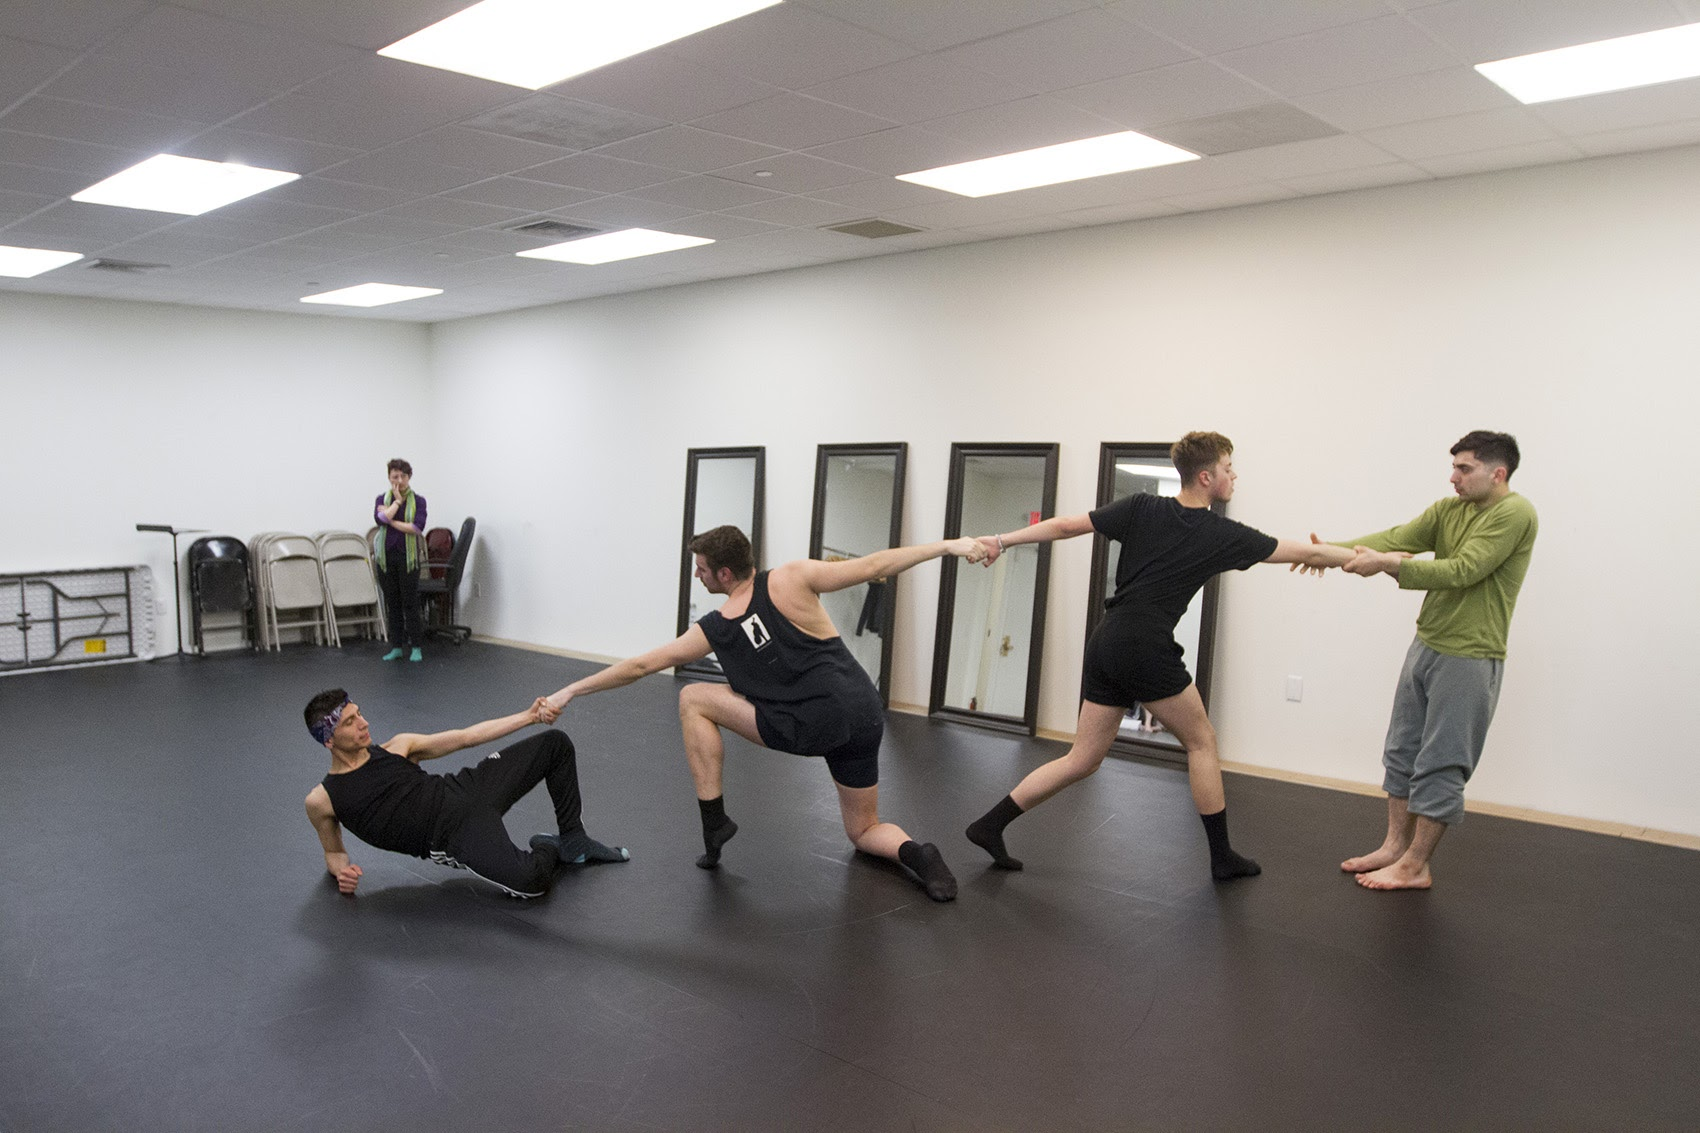 Paradise Lost dance troupe practices in the Lyric Stage Company's rehearsal space on Clarendon Street. (Joe Difazio for WBUR)